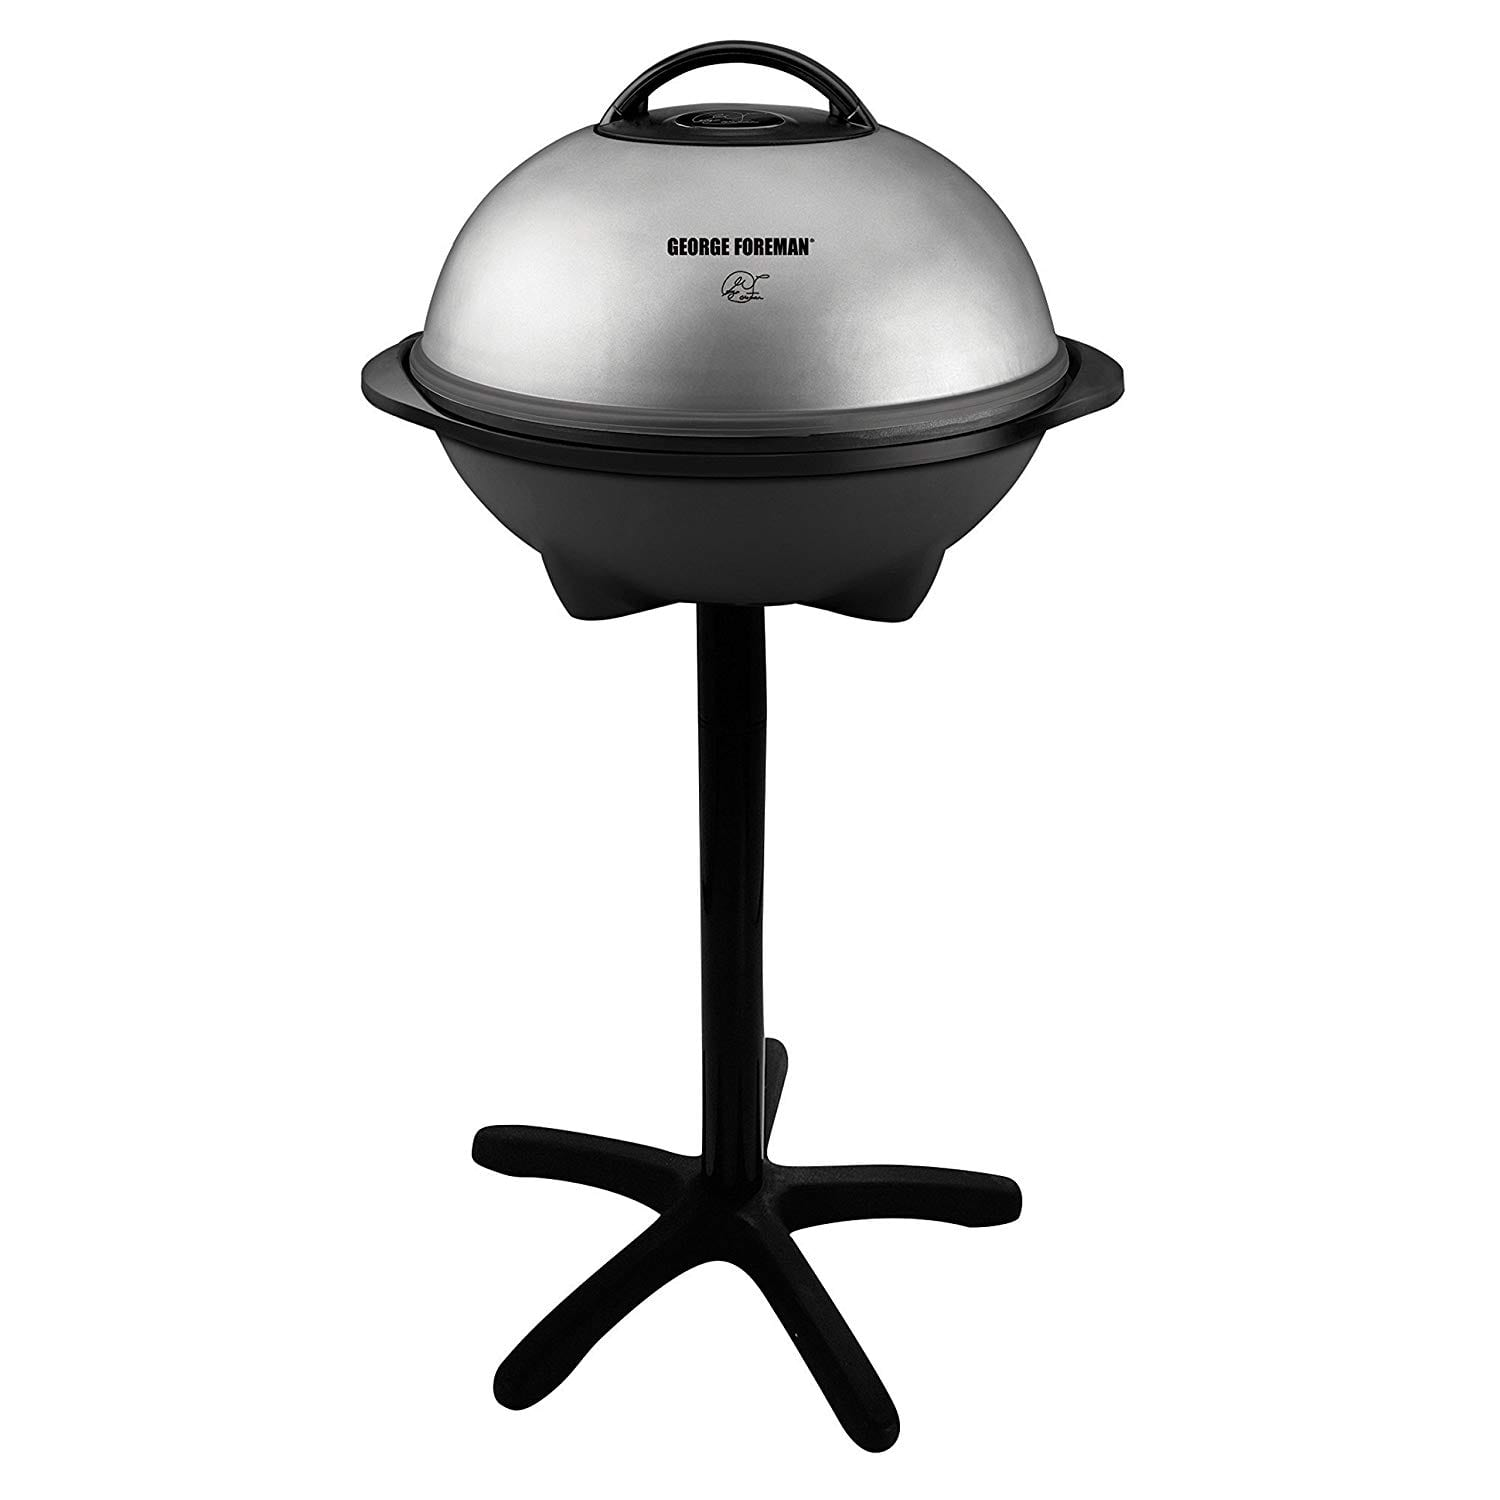 George Foreman 15-Serving Indoor-Outdoor Electric Grill Review